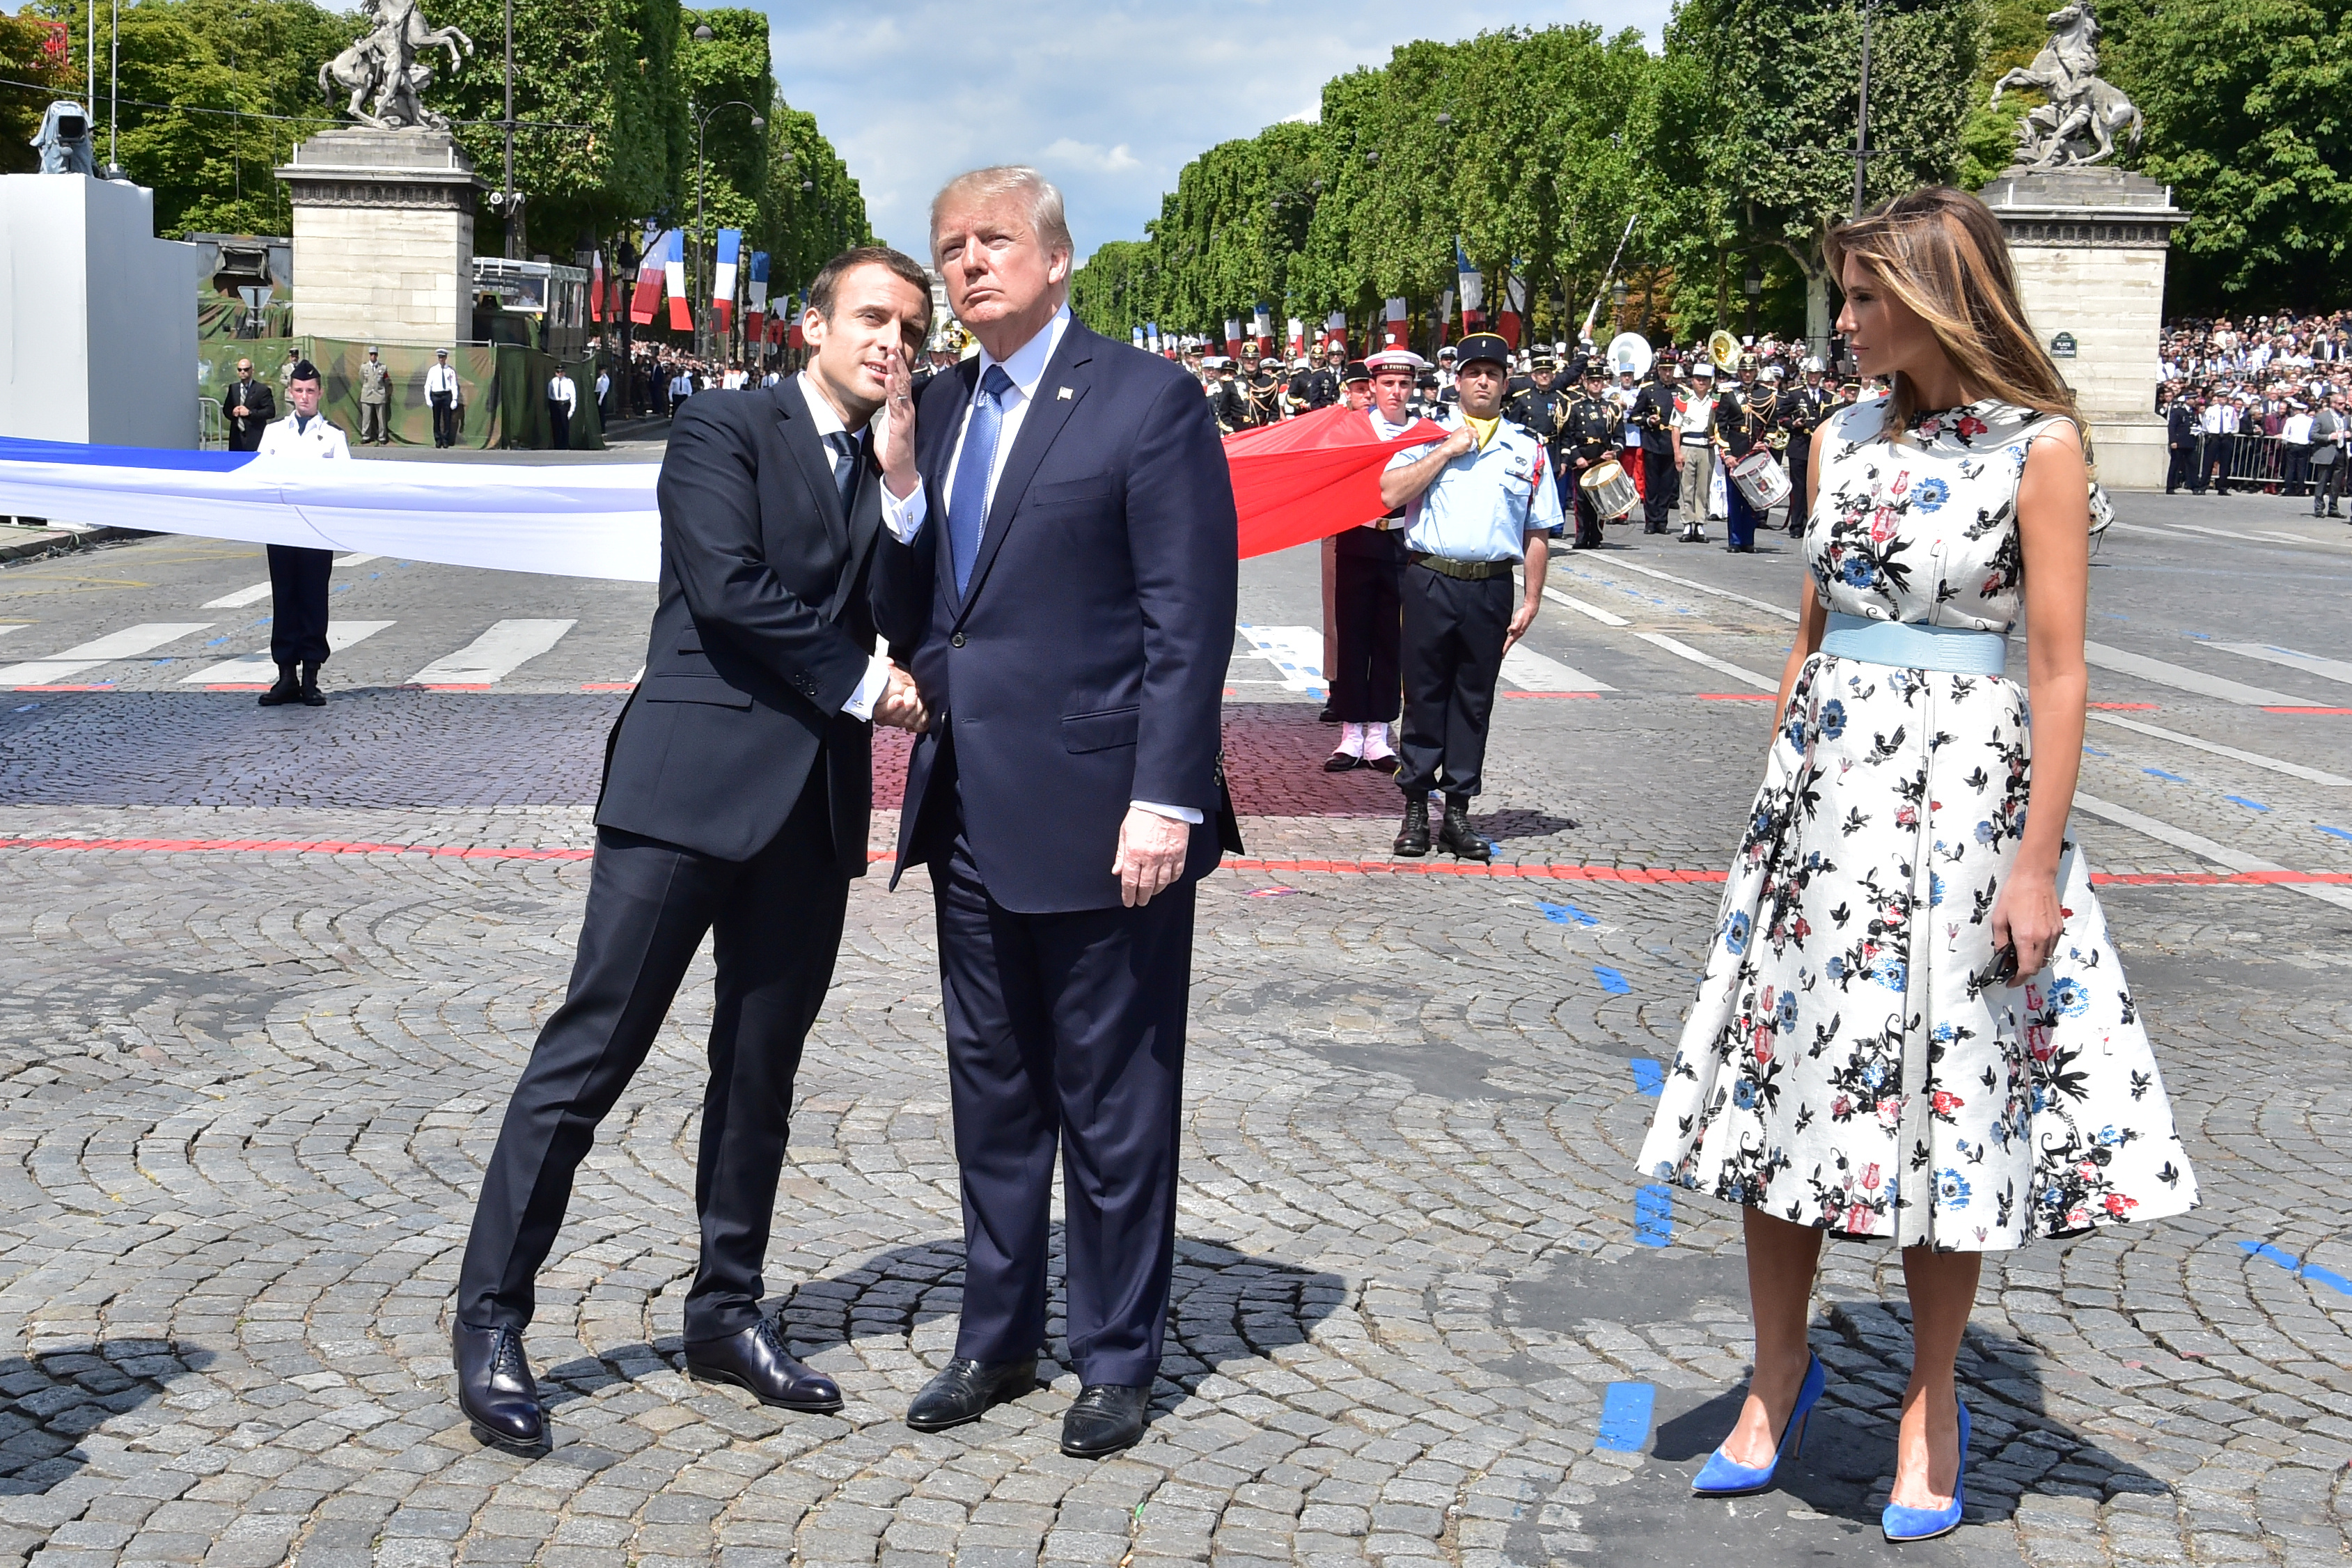 FILE - French President Emmanuel Macron, left, shakes hands with U.S. President Donald Trump, next to U.S. first lady Melania Trump during the traditional Bastille Day military parade on the Champs-Elysees in Paris, July 14, 2017.